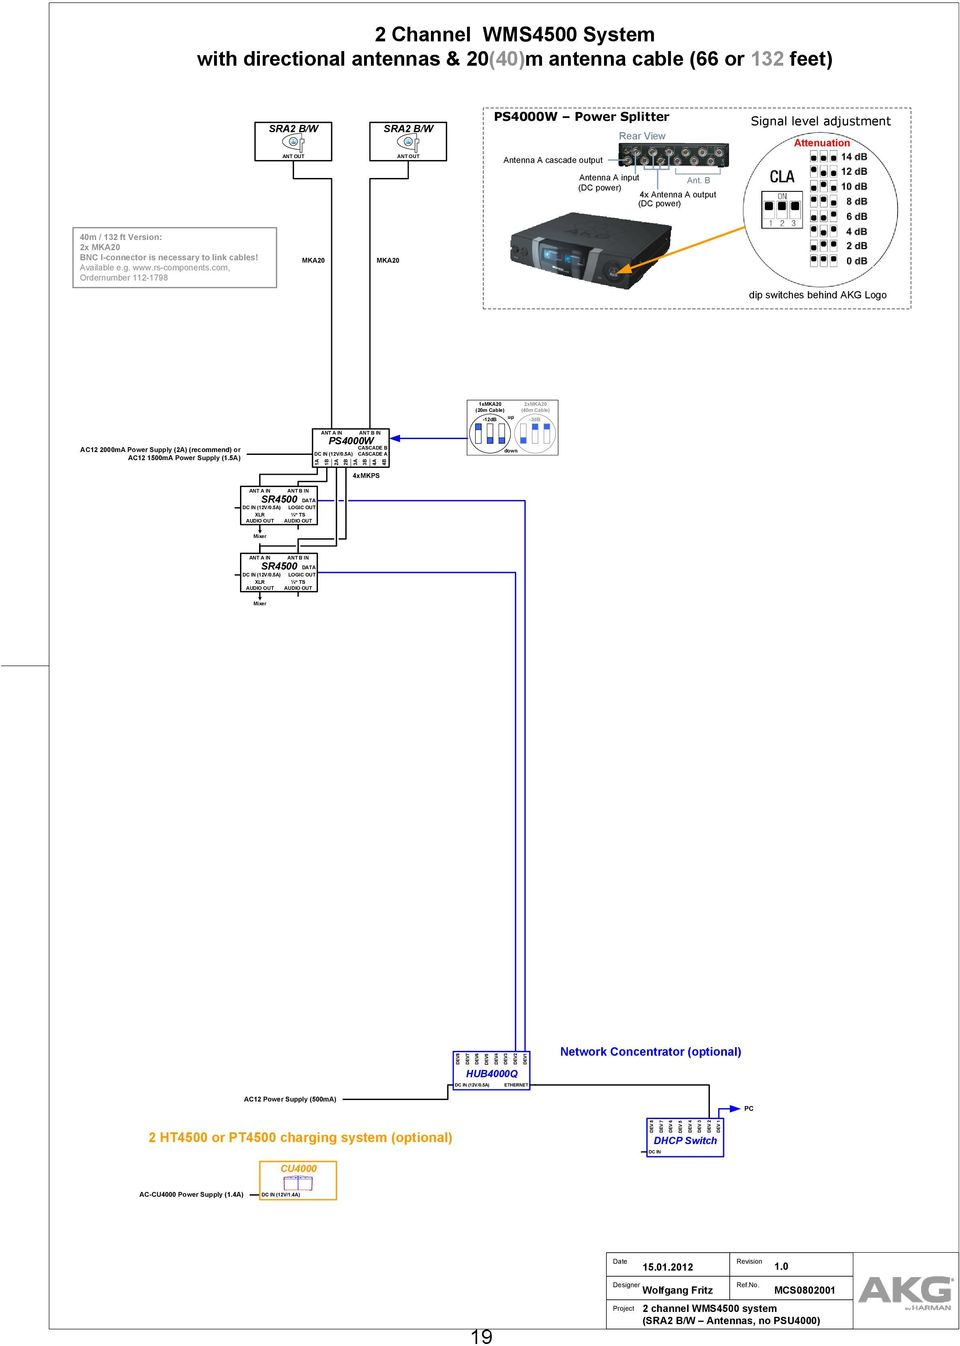 Introduction All The Wms4500 Systems In This Document Are Designed Antenna Power Injector Schematic Com Ordernumber 112 1798 Dip Switches Behind Akg Logo 1x 20m Cable